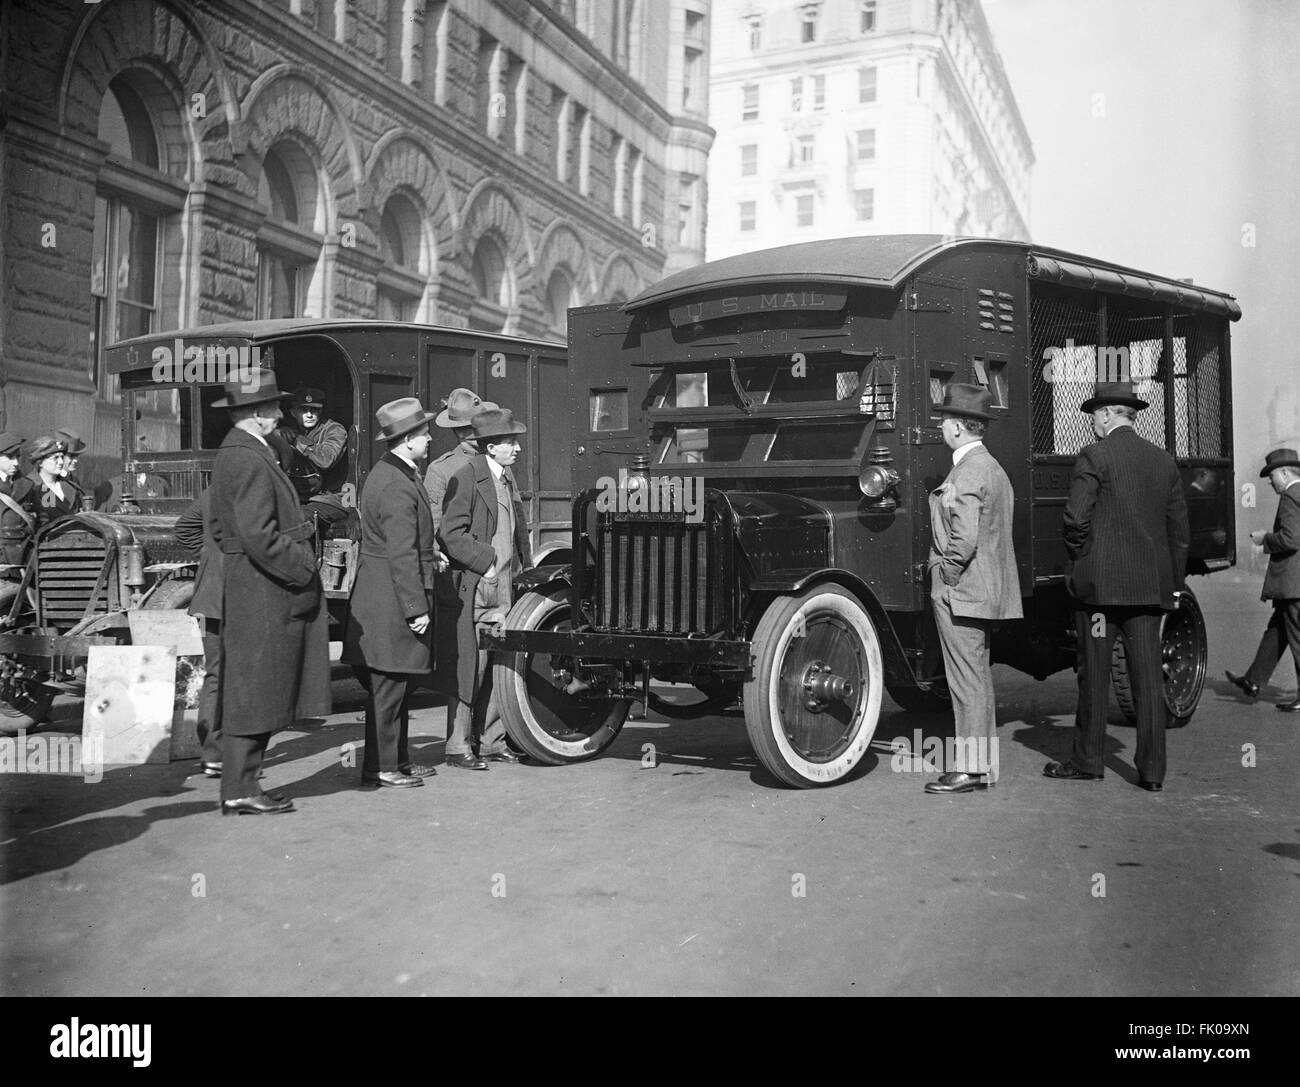 U.S. Mail Trucks, Washington DC, USA, 1921 - Stock Image